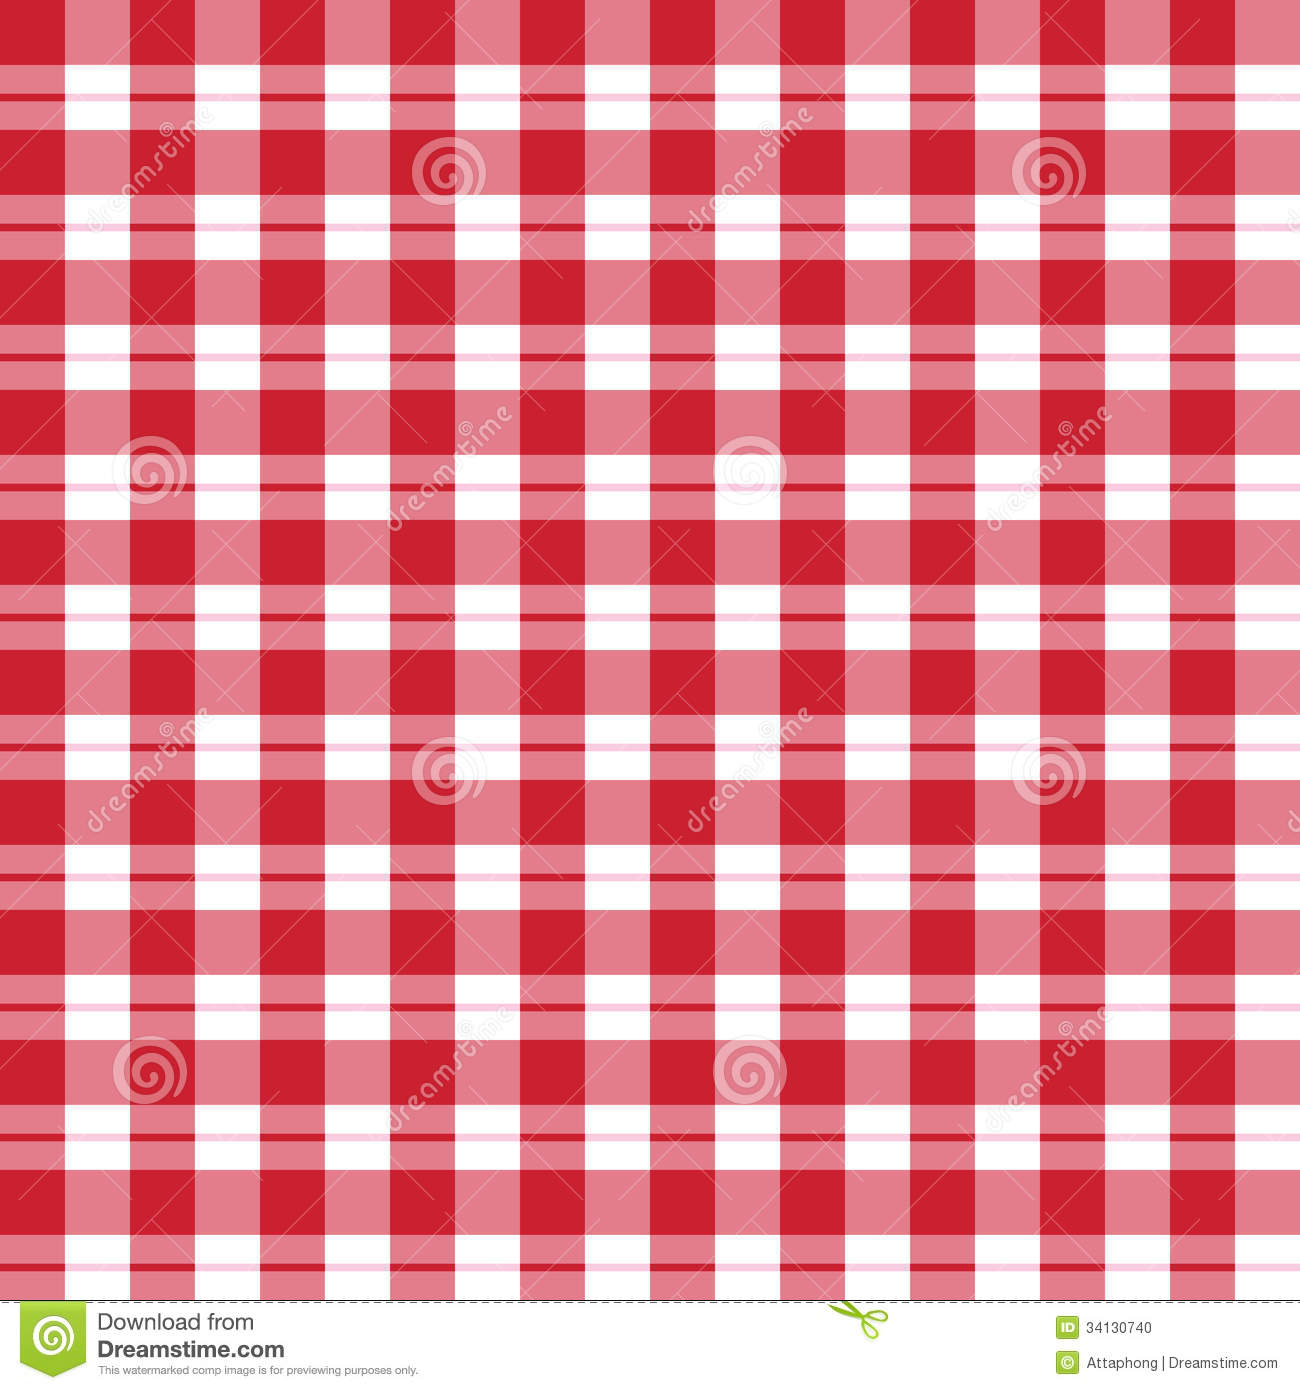 Tartan Pattern seamless pattern red tartan vector stock photo - image: 34130740